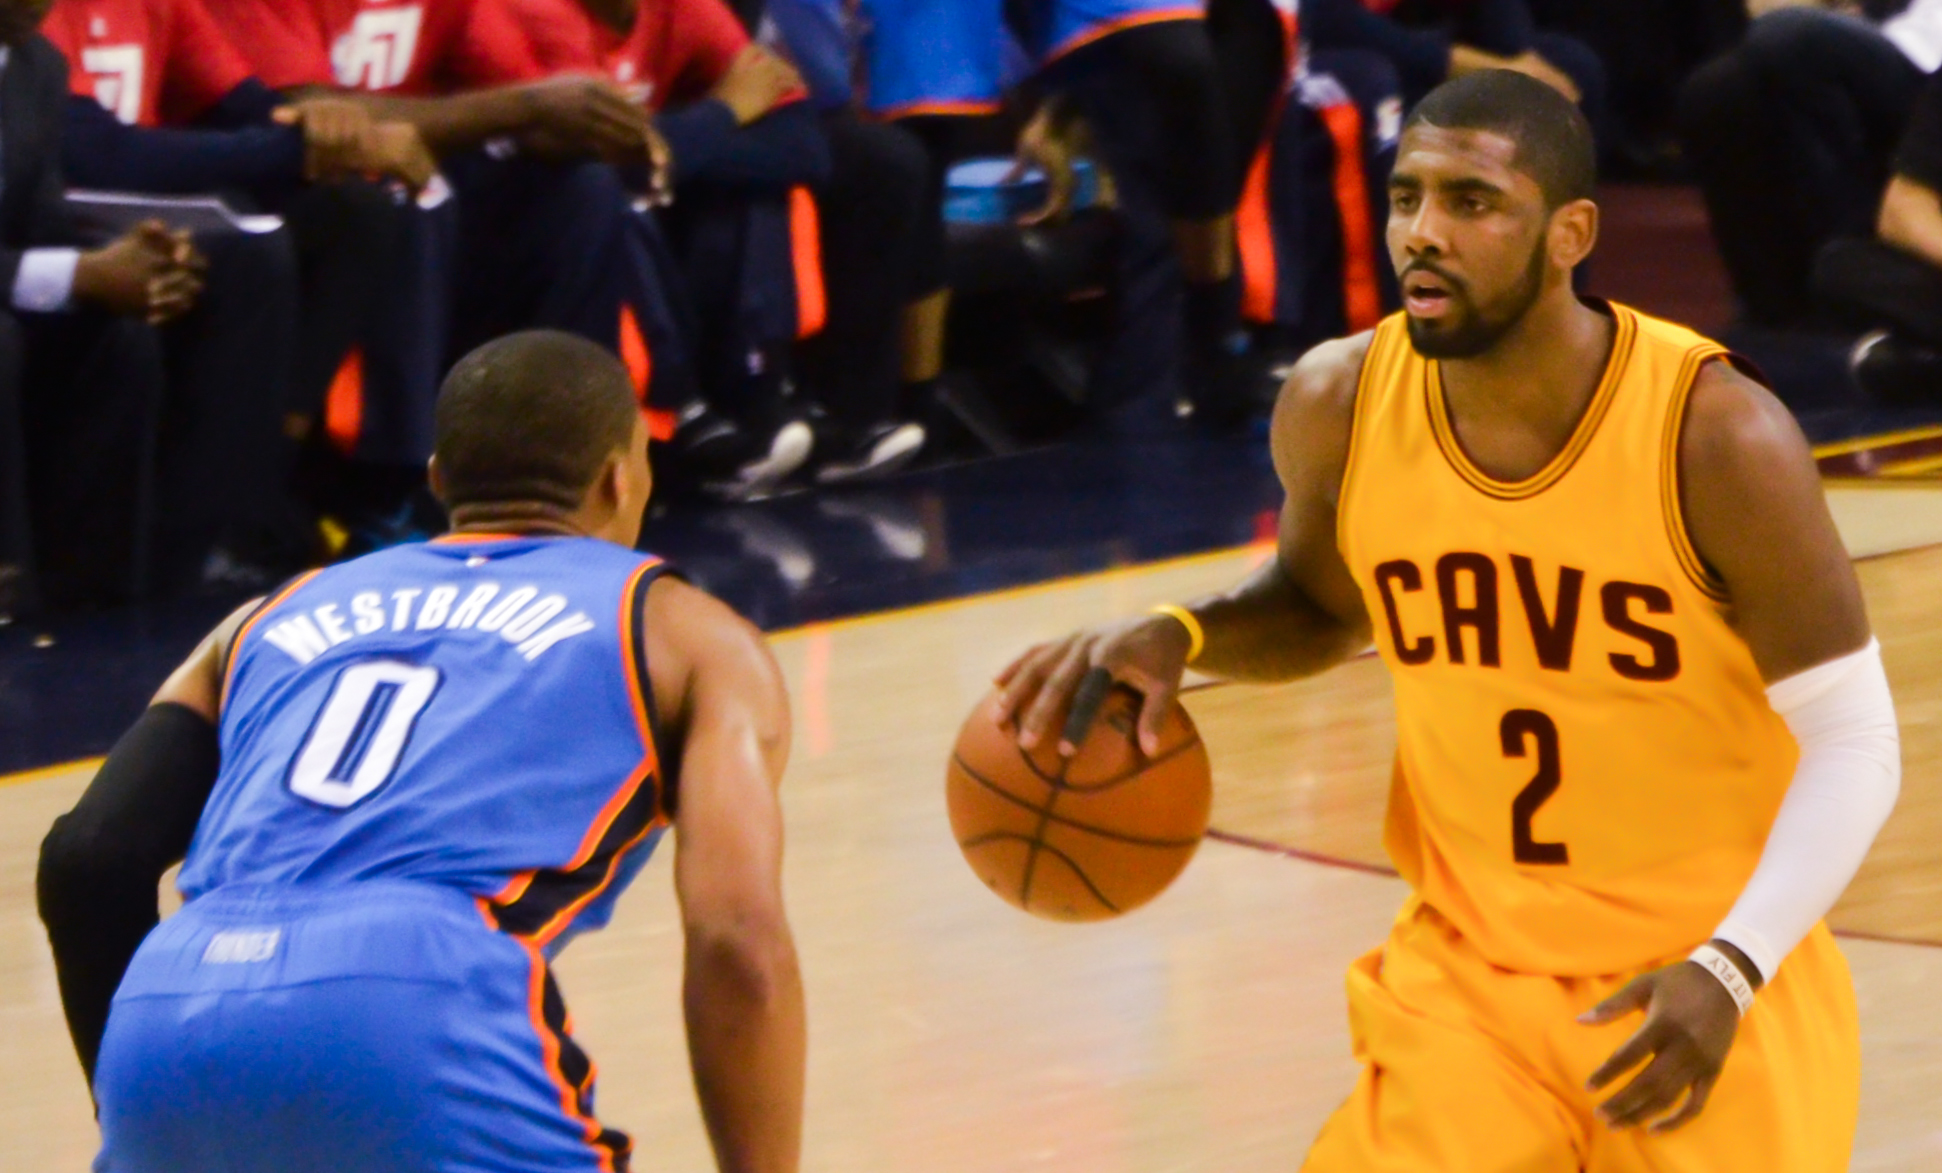 File:Kyrie Irving 2015.jpg - Wikimedia Commons